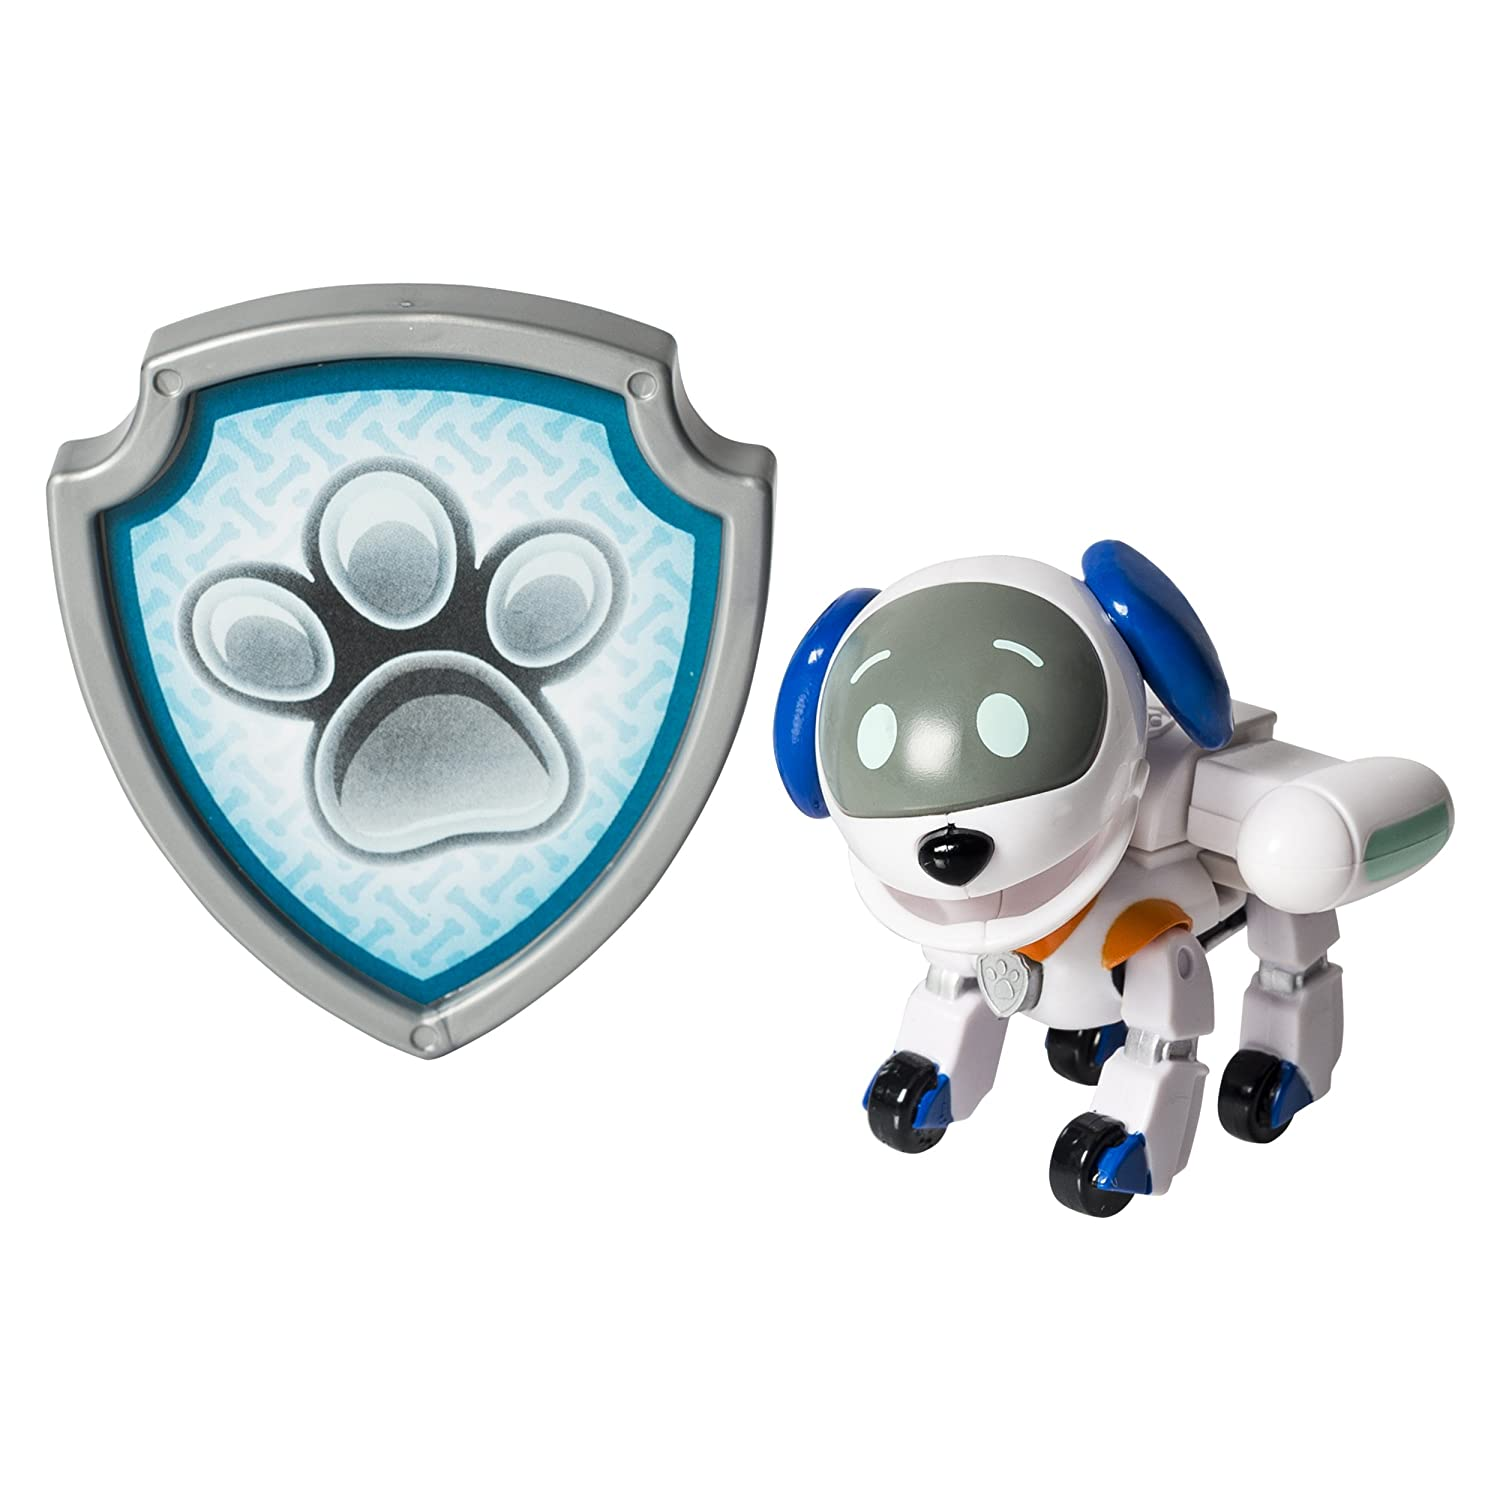 Top 9 Best Robot Pets for Kids Reviews in 2021 1